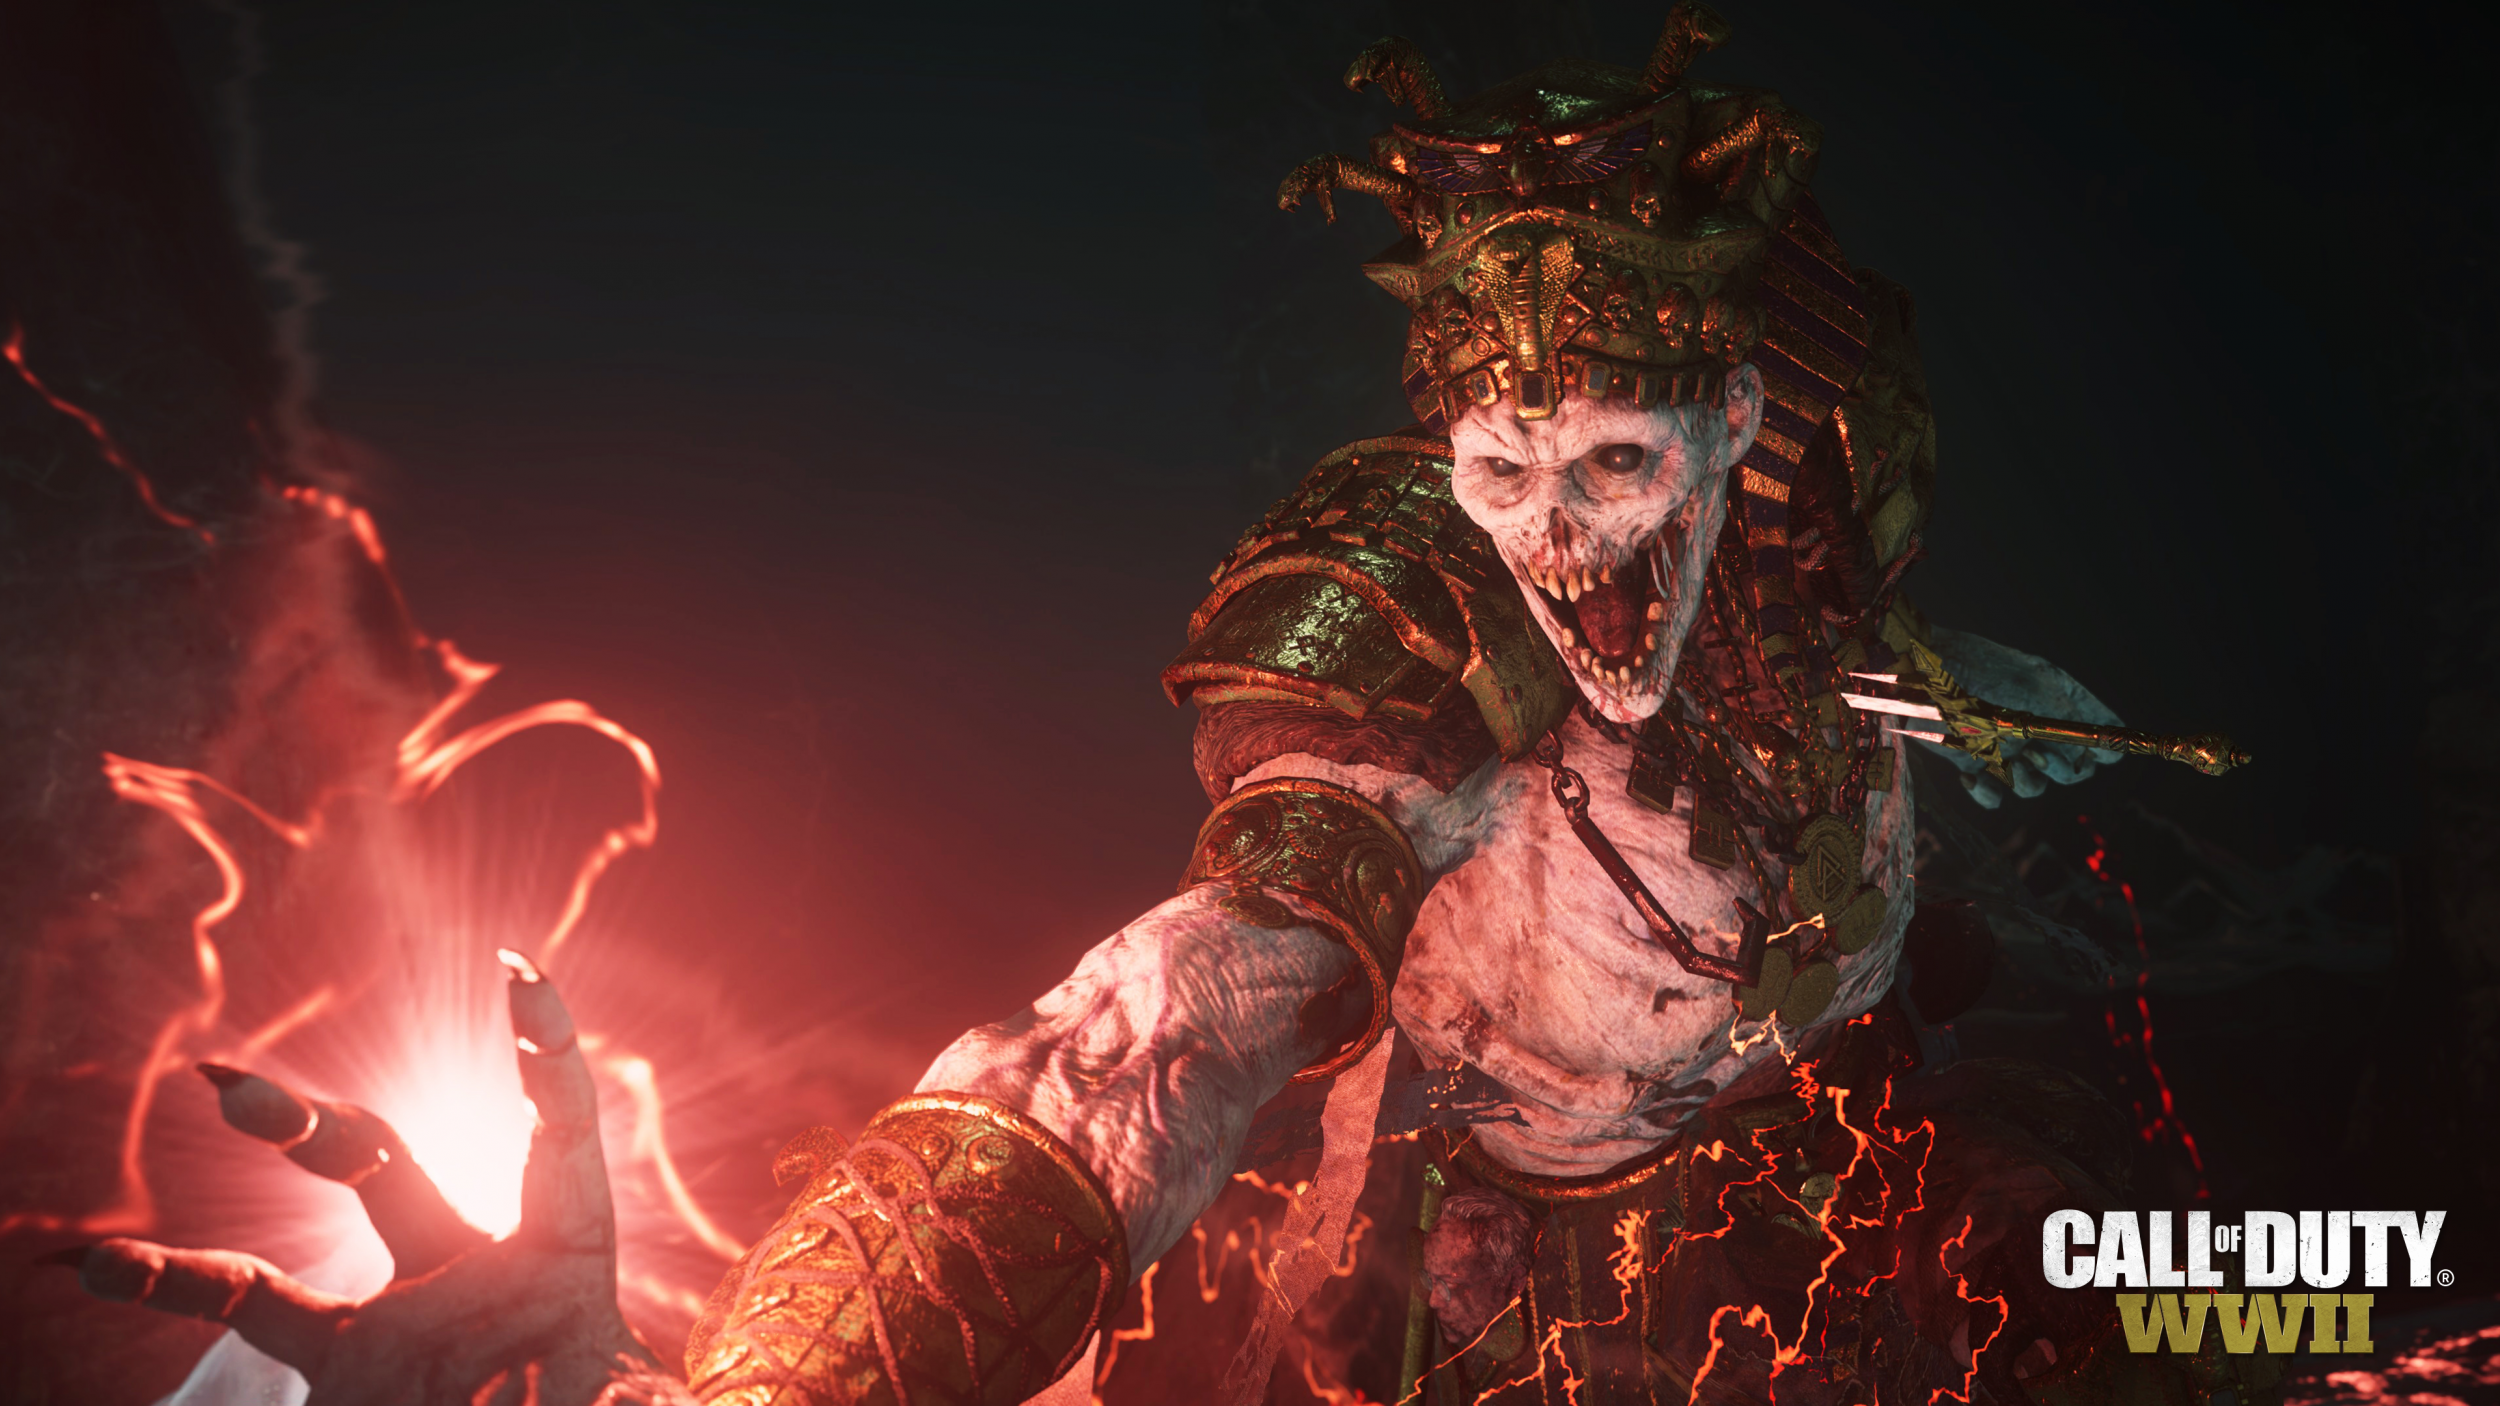 Call Of Duty Wwii Halloween 2020 Call of Duty: WWII' Update 1.22 Adds Halloween Scream Event